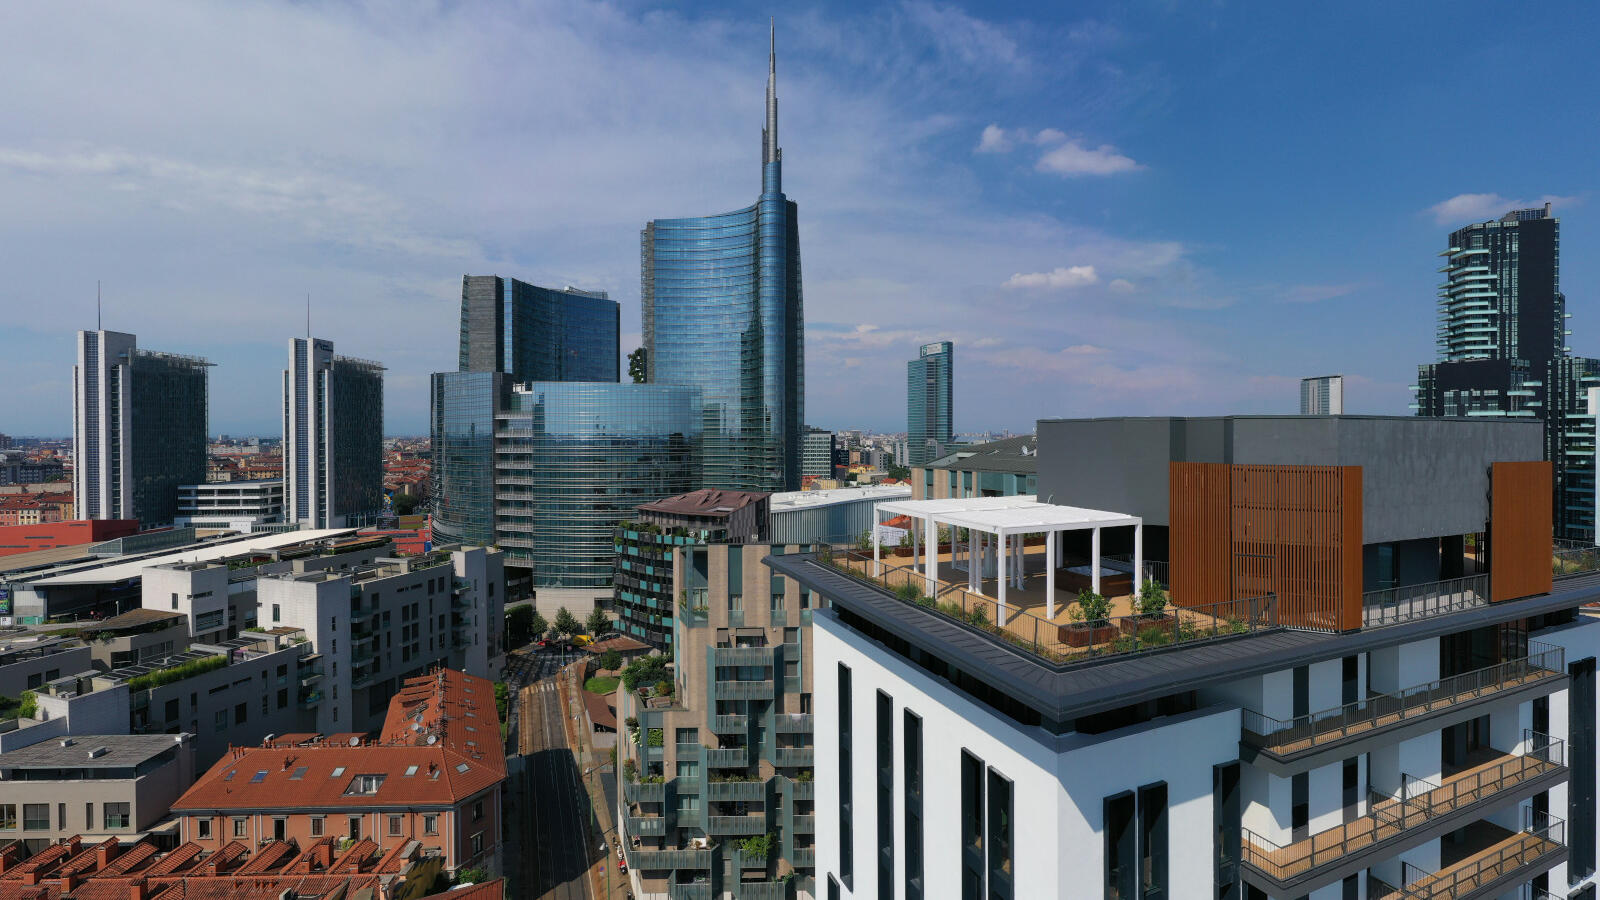 Milano Verticale | Overview